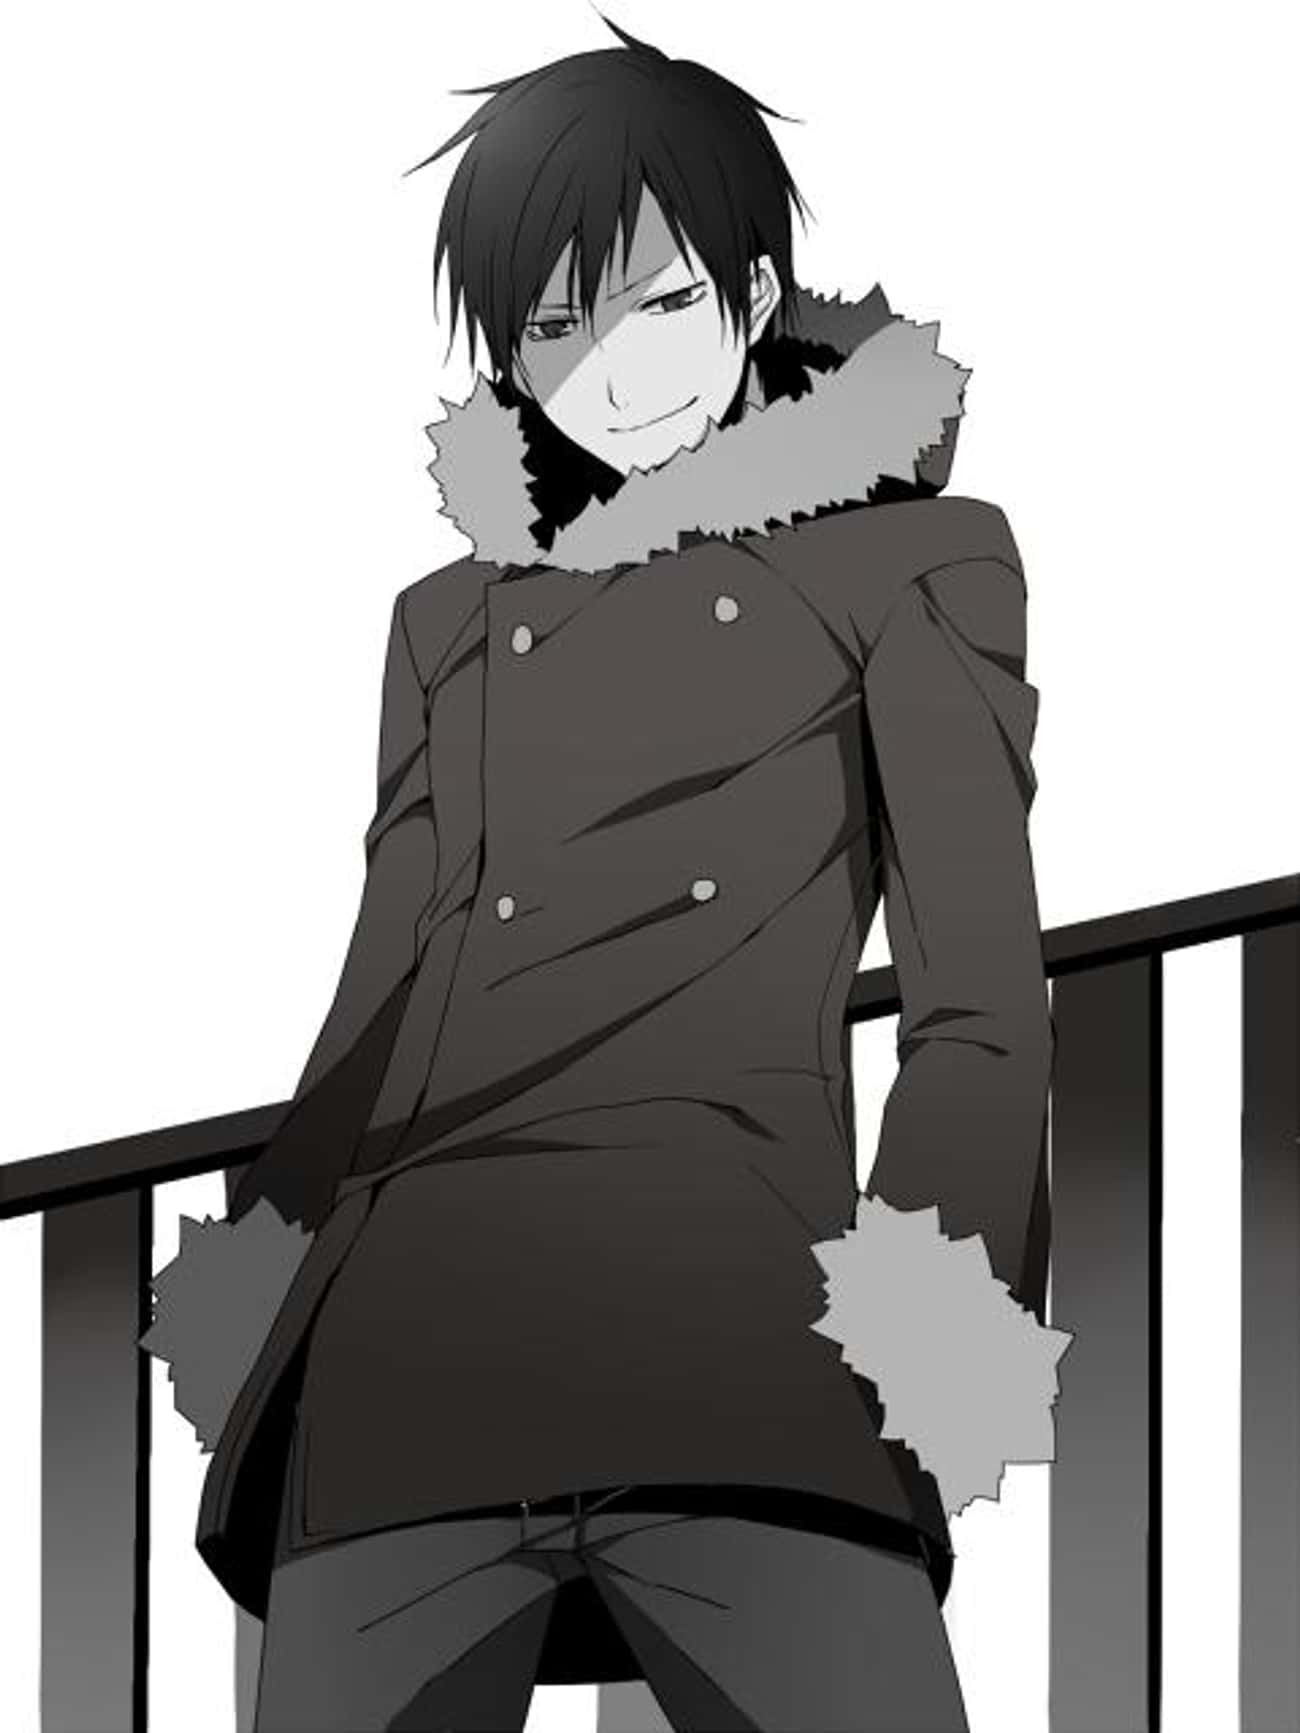 Izaya Orihara is listed (or ranked) 4 on the list The 36+ Best Dressed Male Anime Characters